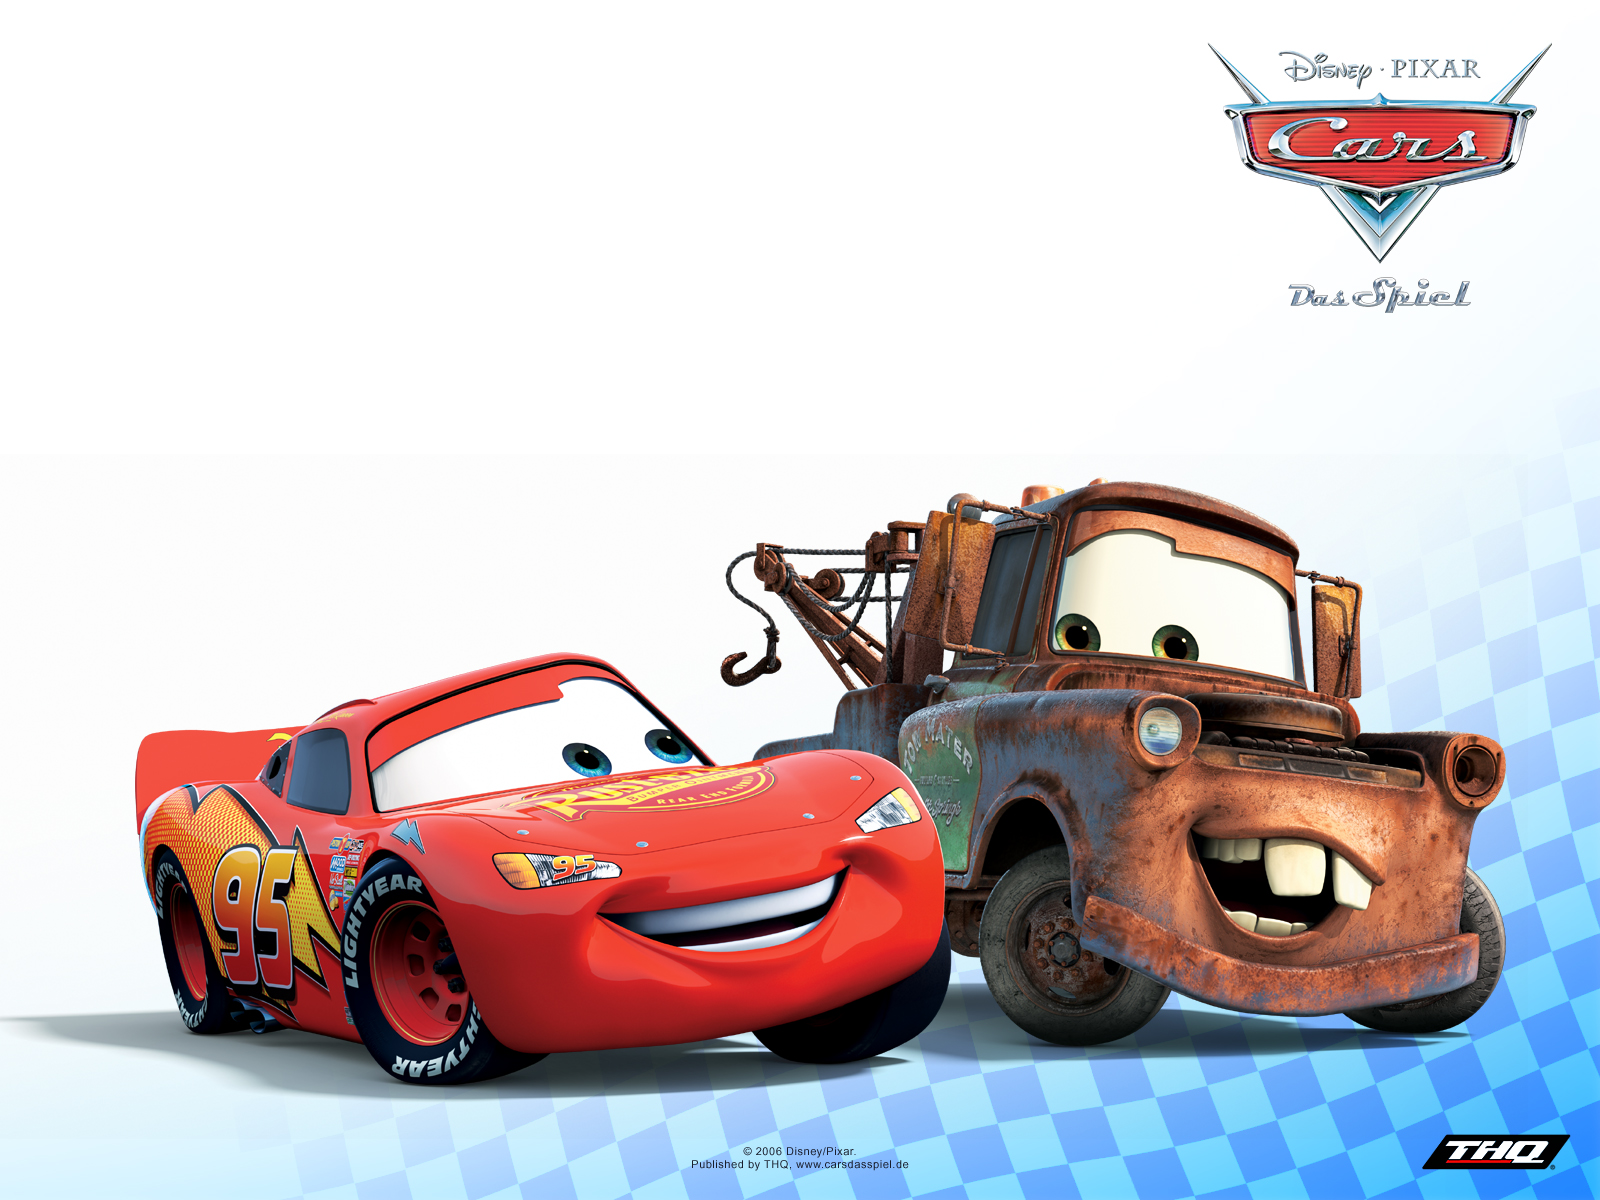 Cars dsiney pixar hd wallpaper hd wallpapers for Disney pixar cars mural wallpaper